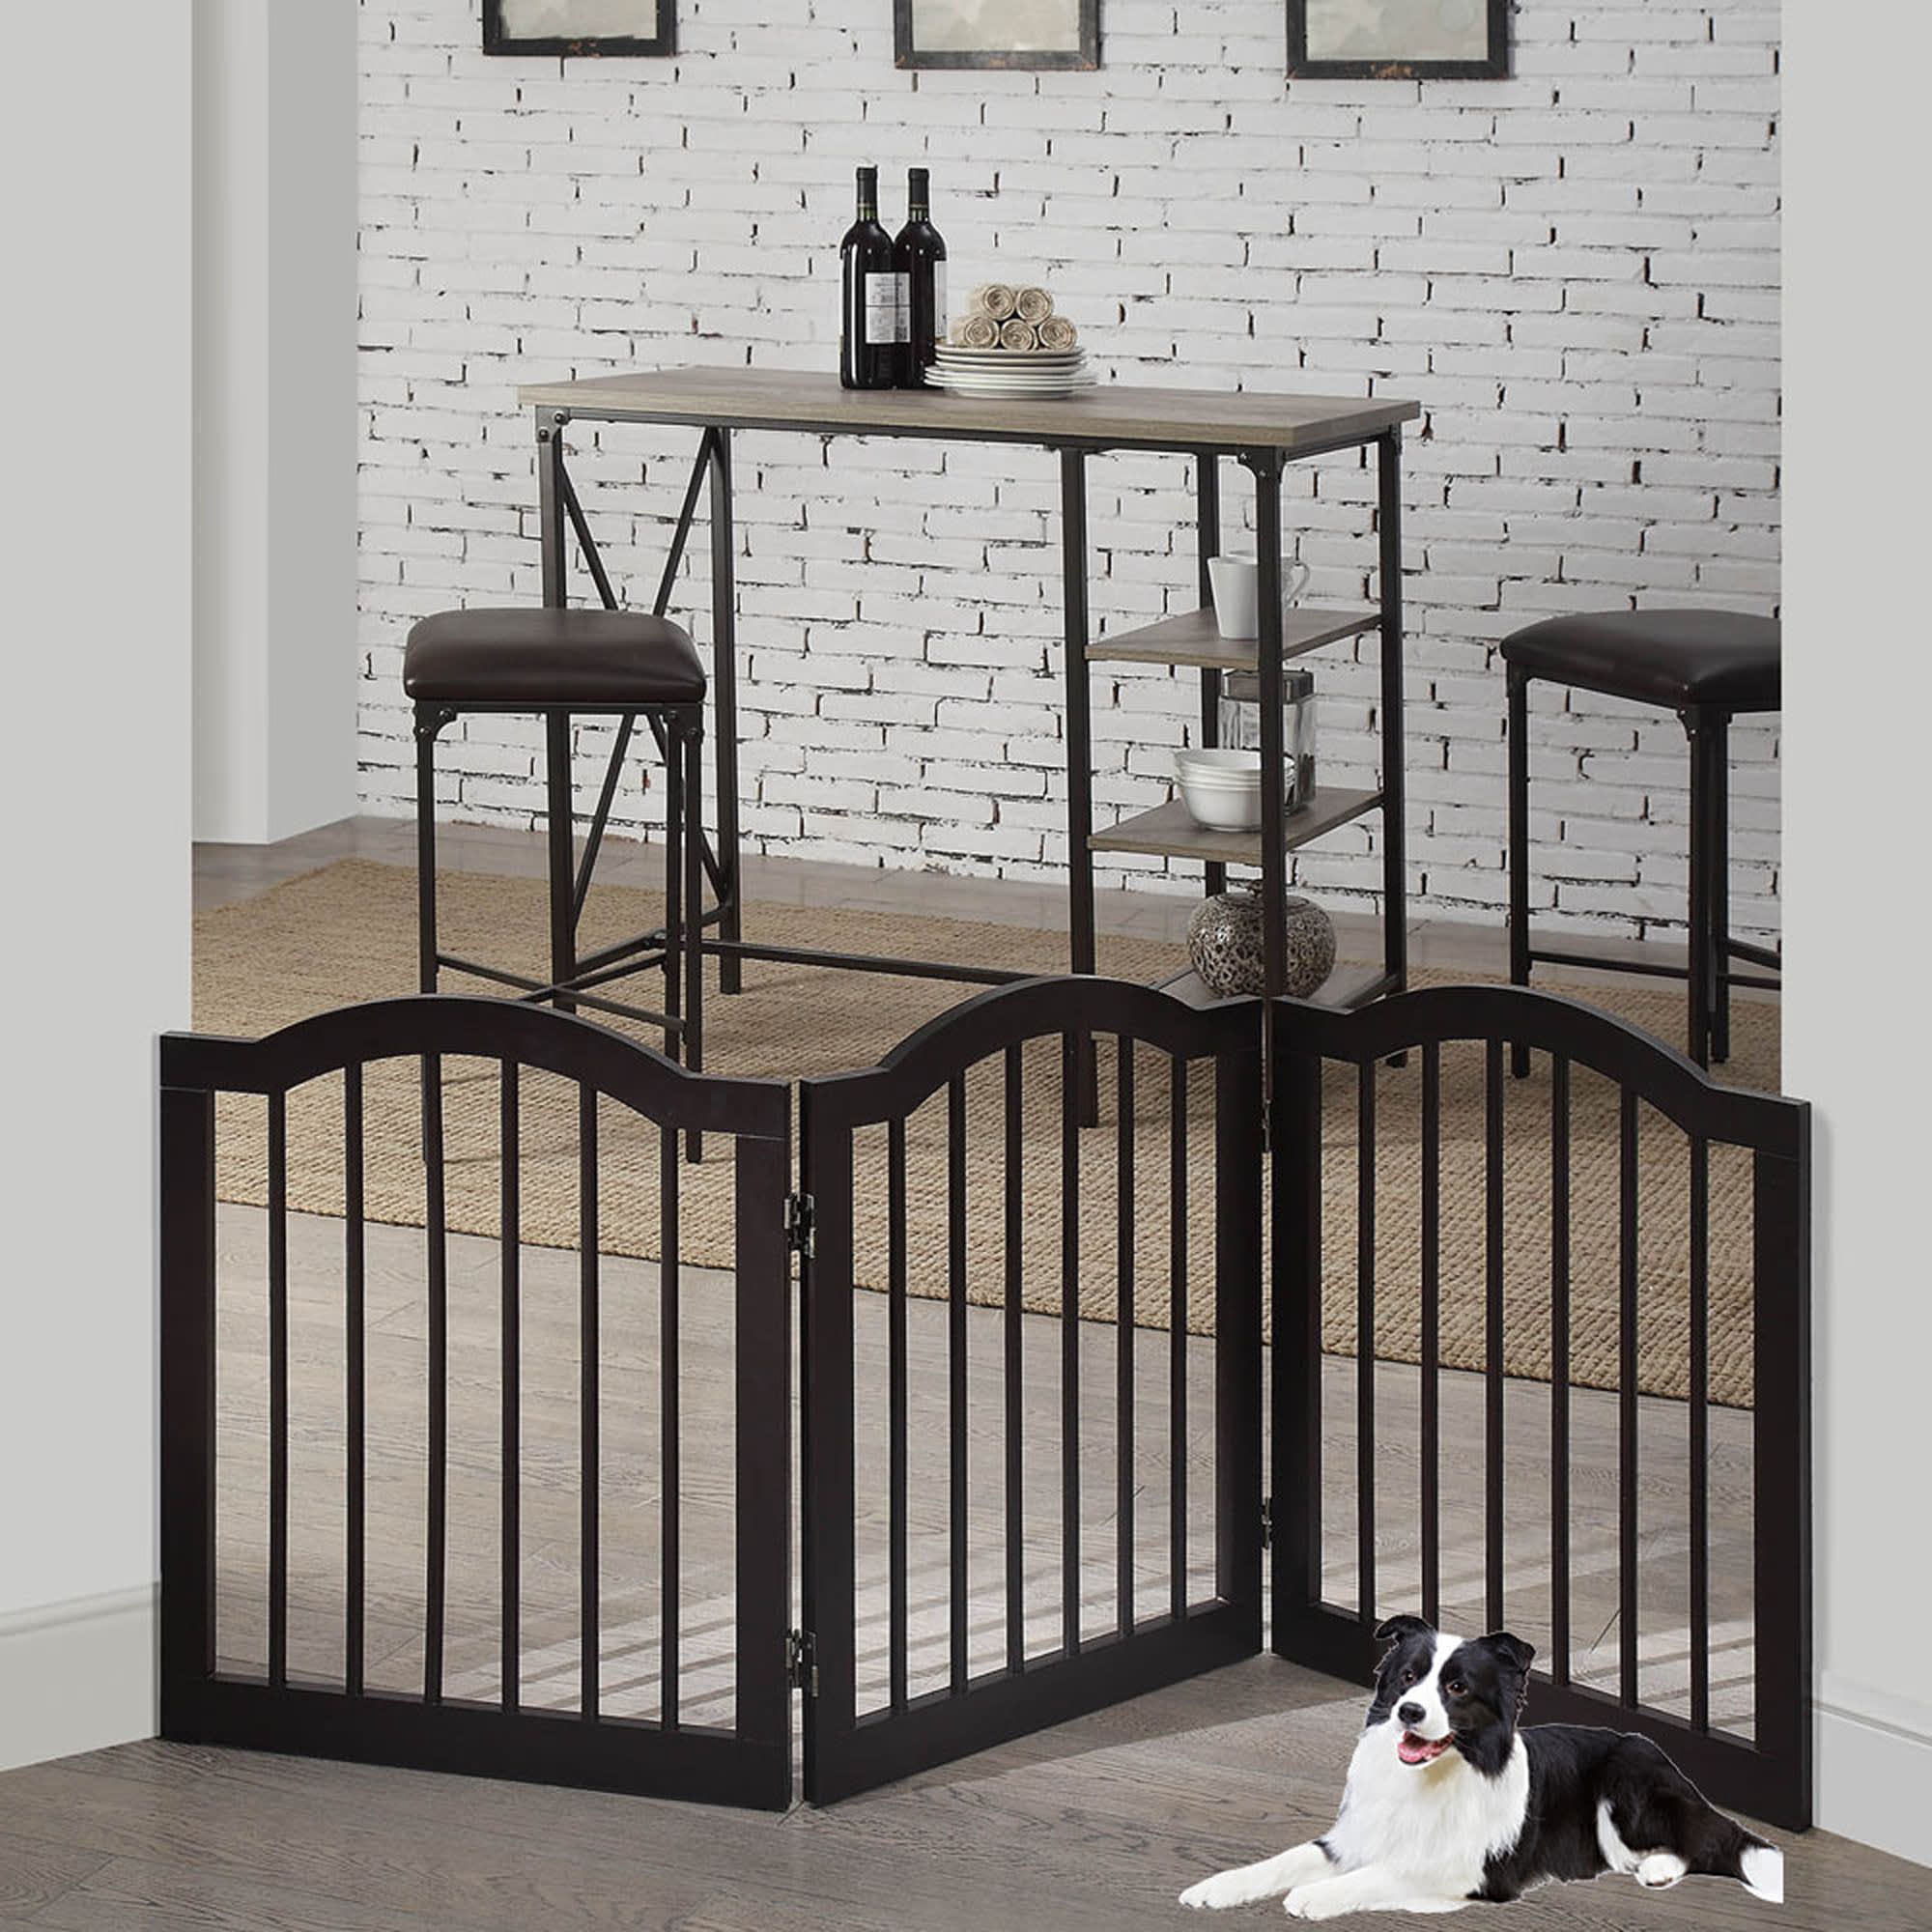 UniPaws Arched Top 3 Panel Dog Gate Espresso Freestanding